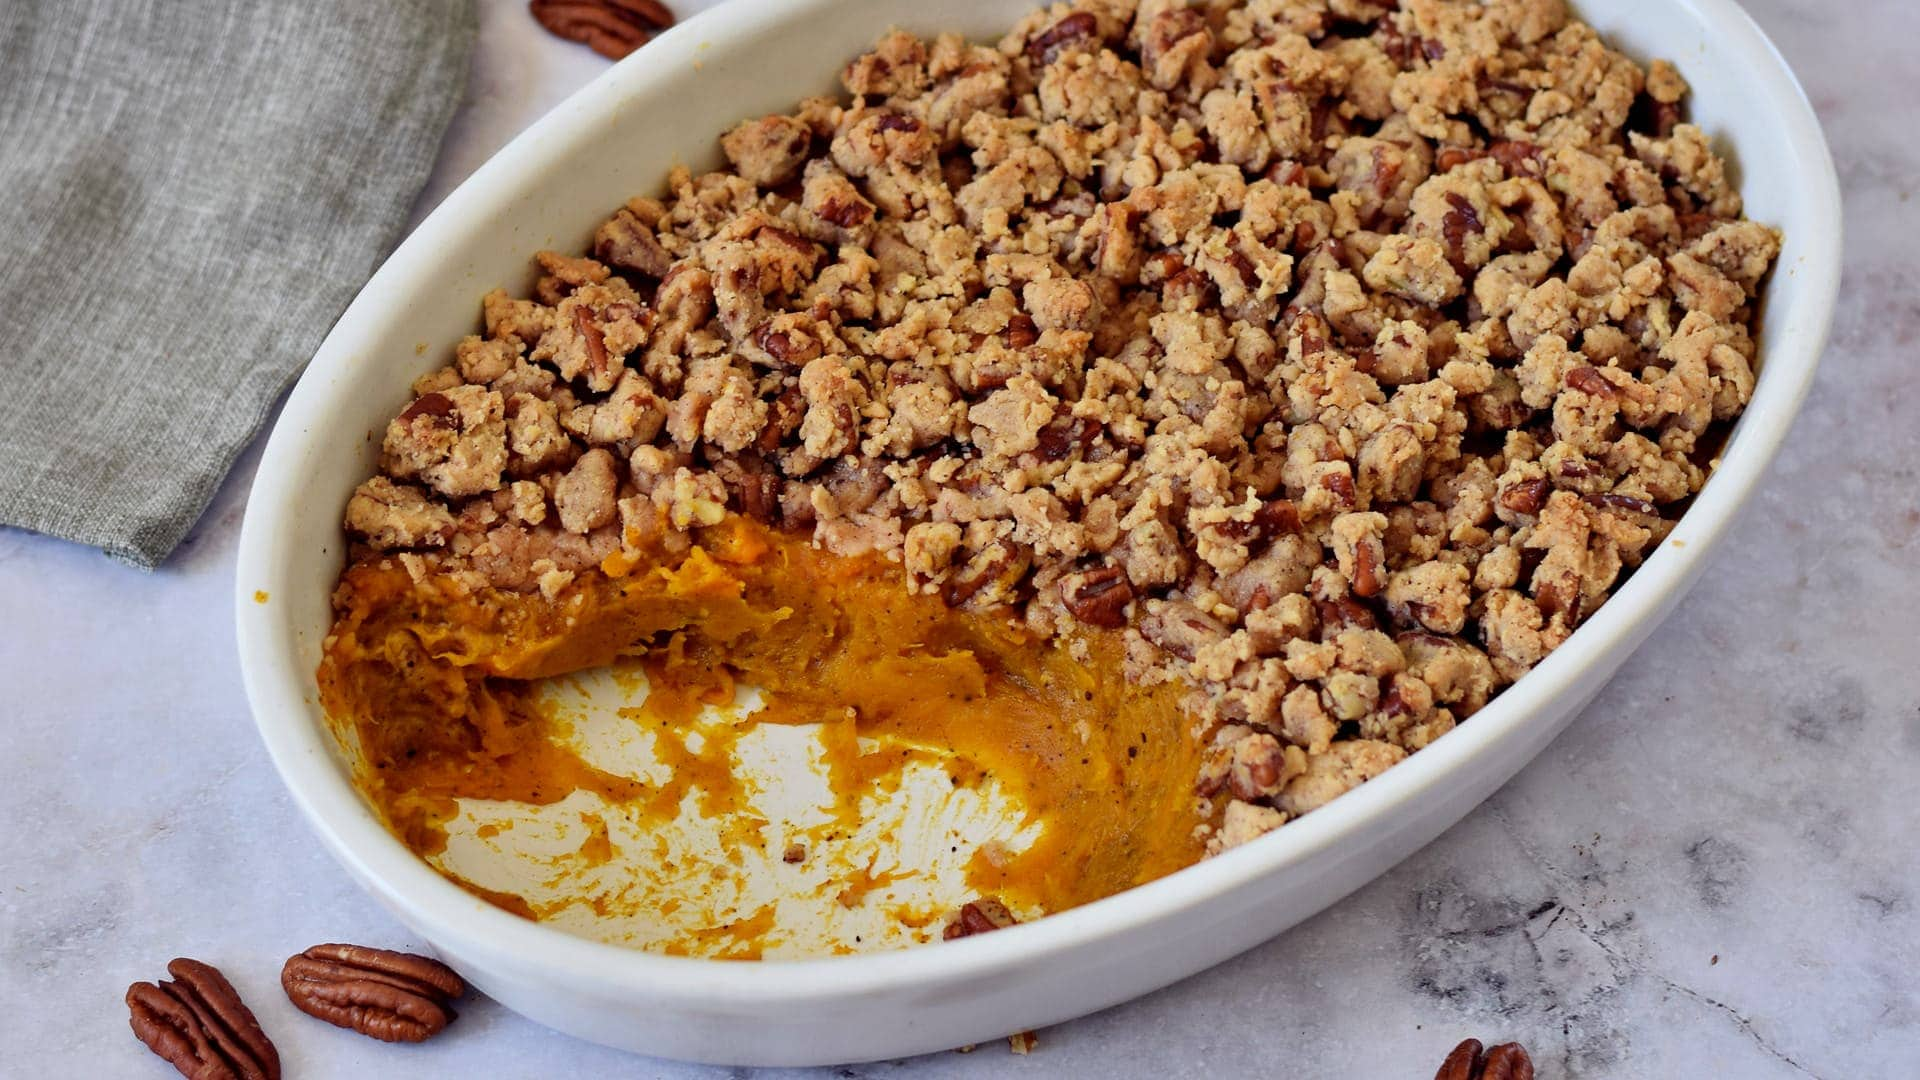 Horizontal photo of a bake with sweet potatoes and pecan streusel topping